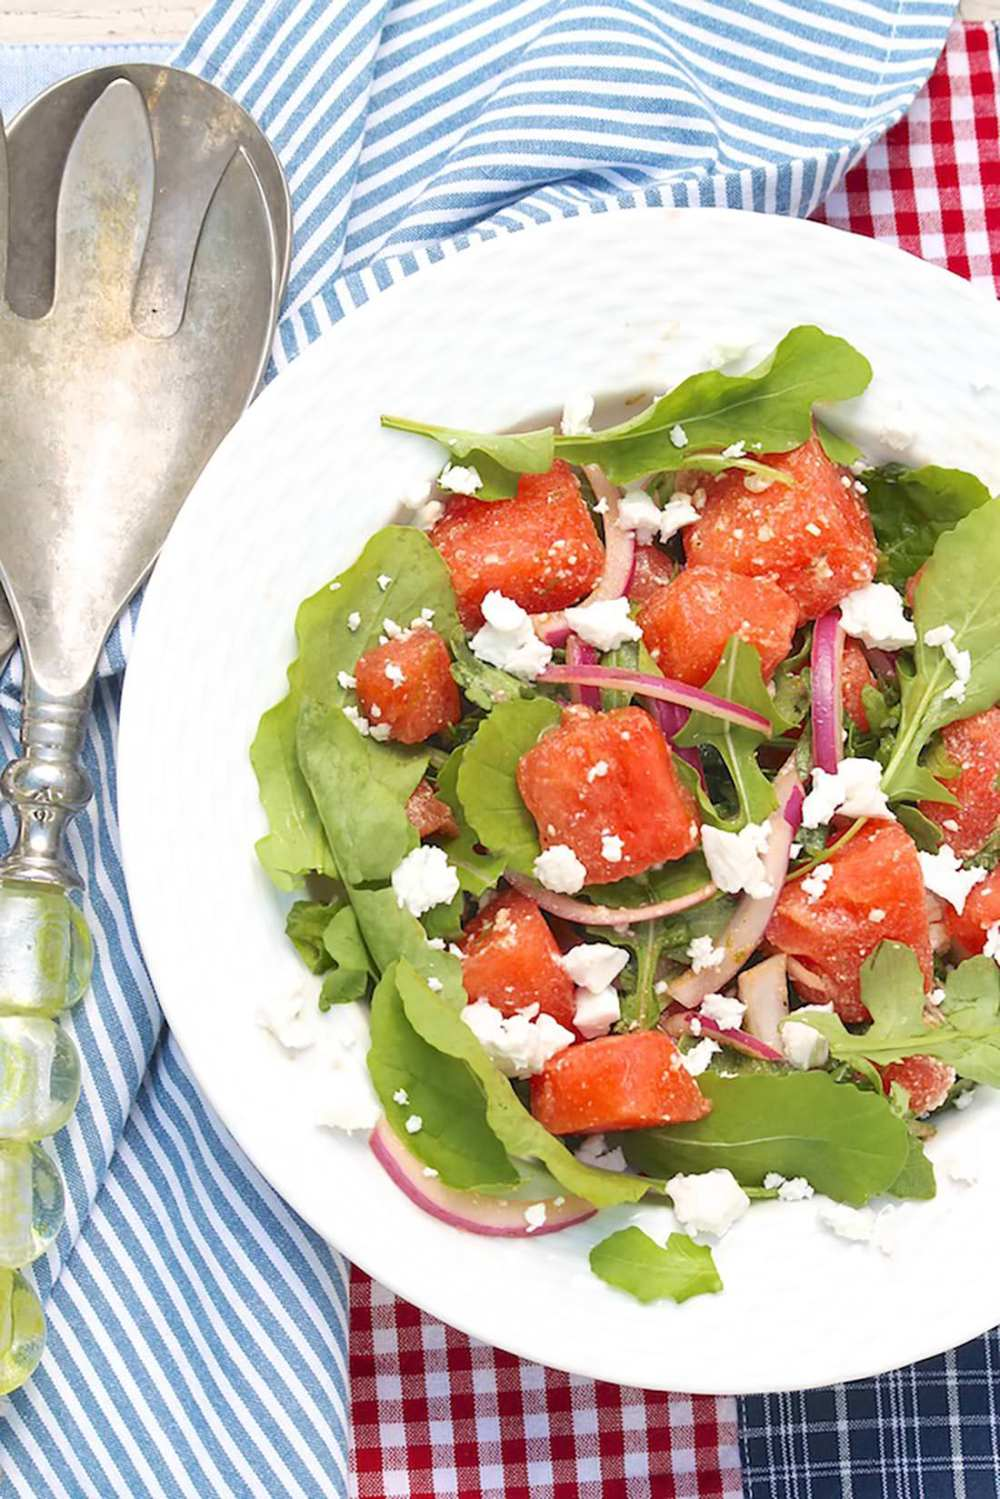 Abby's Watermelon Salad